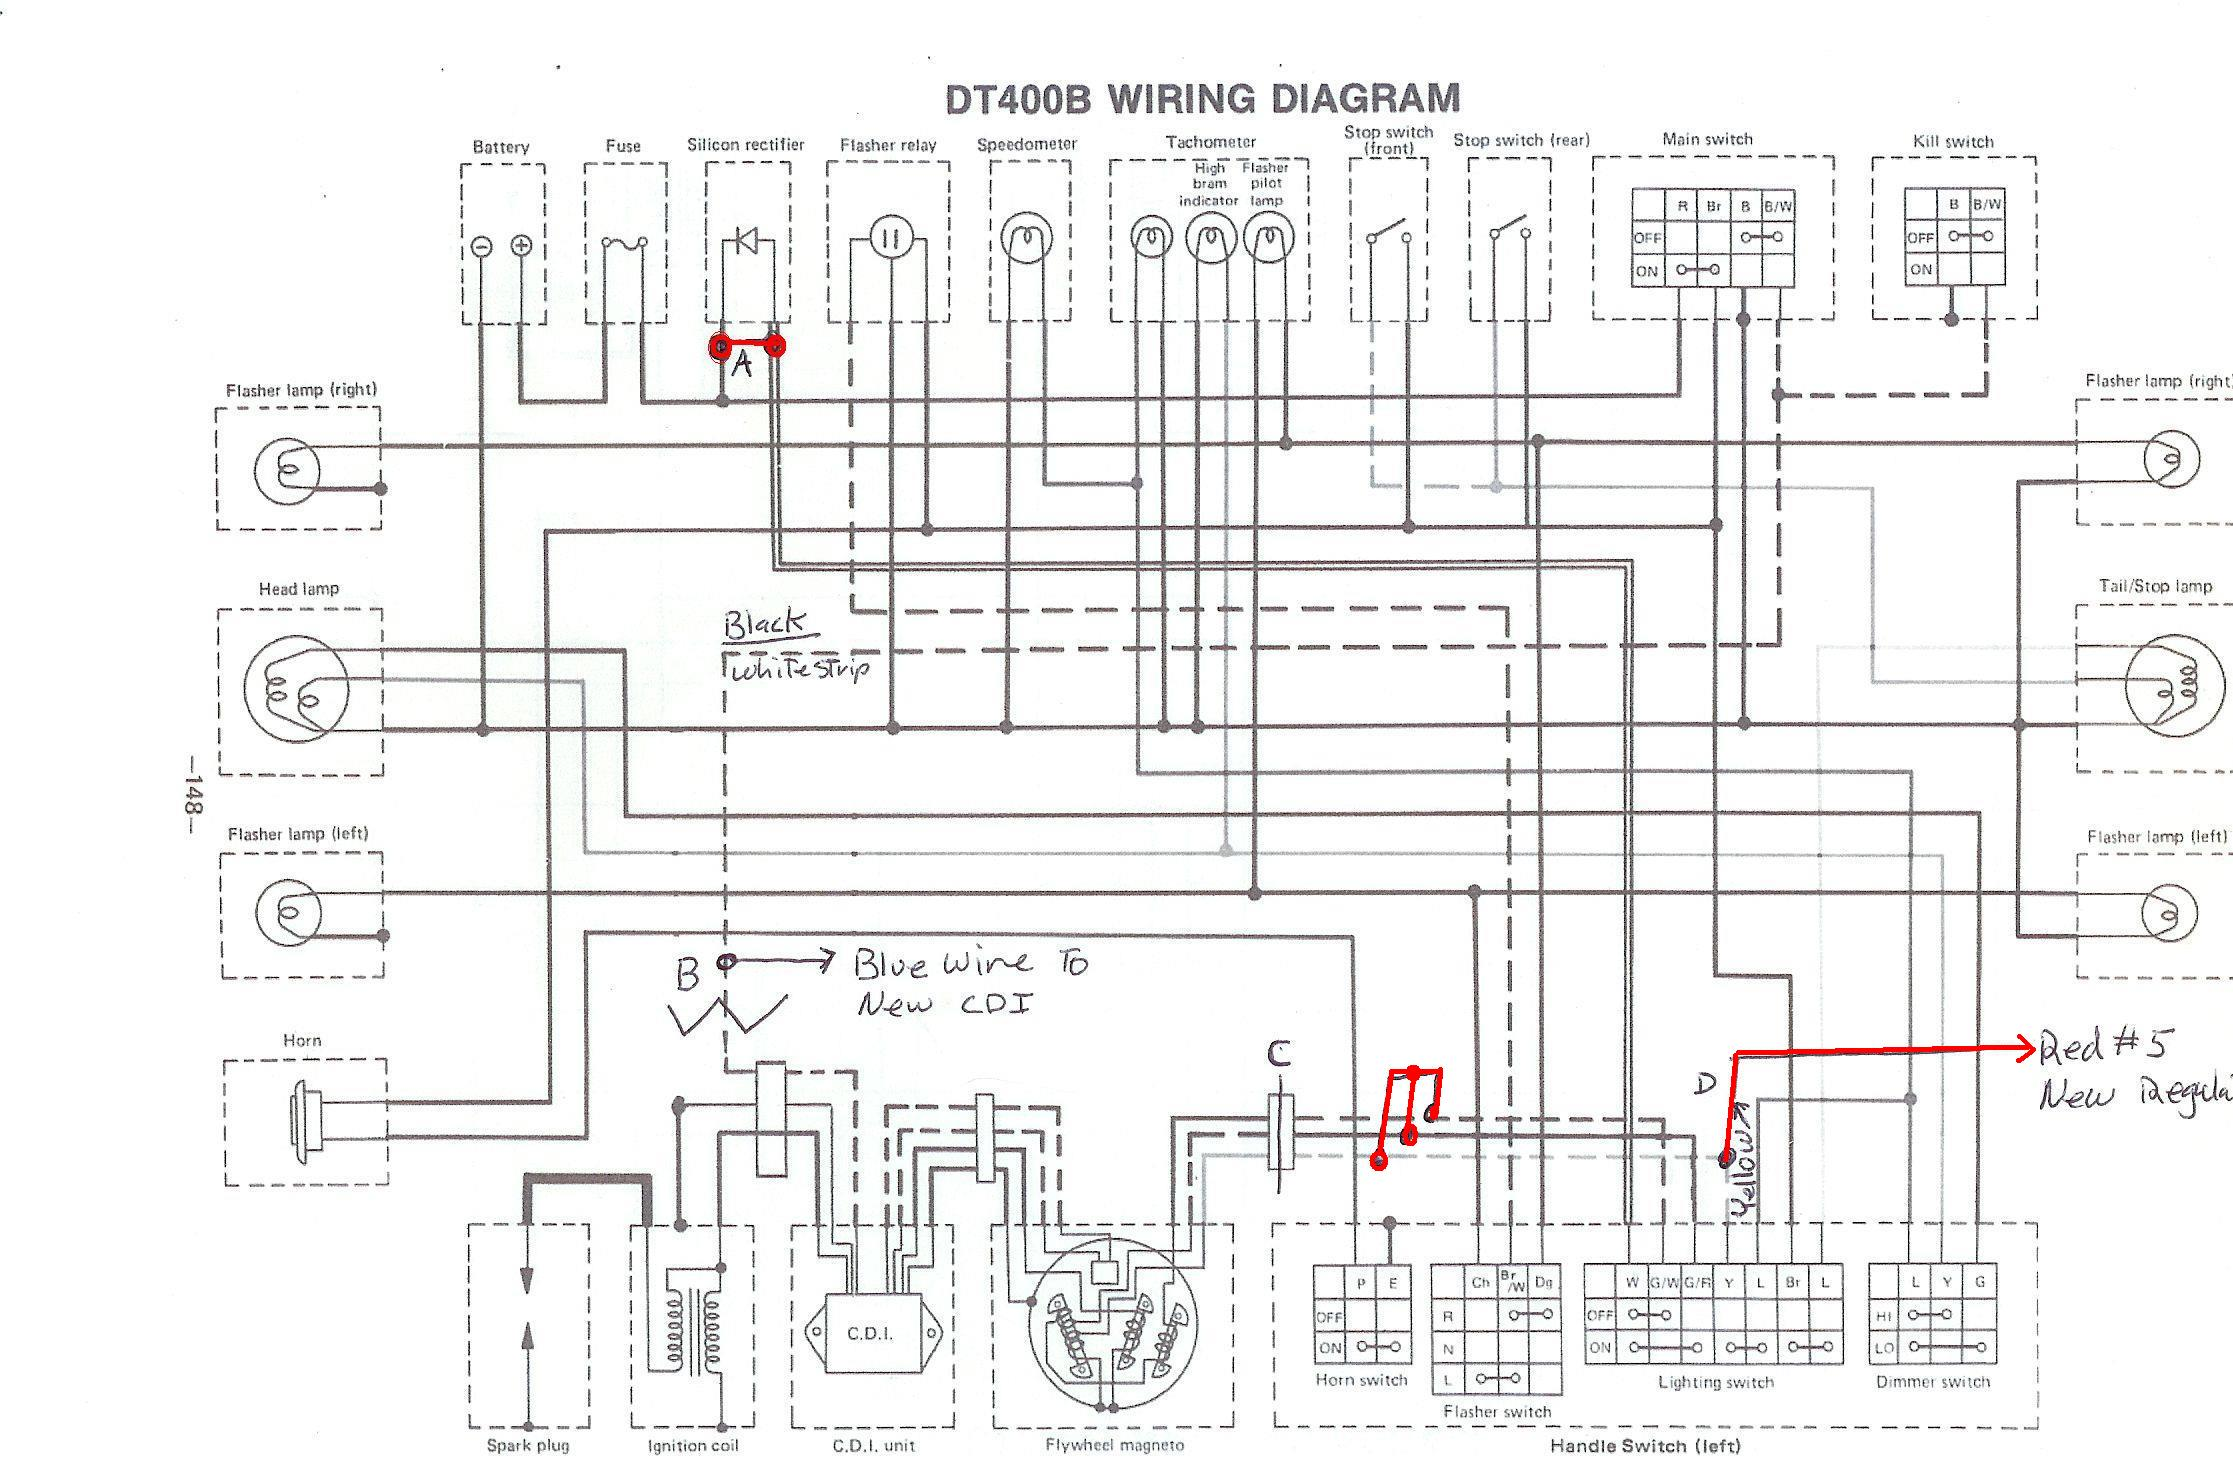 powerdynamo for yamaha dt1 2 3 rt1 2 3 dt250 360 400 ty250 yza250 assembly instructions · wiring diagram · original wiring diagram of the dt 400